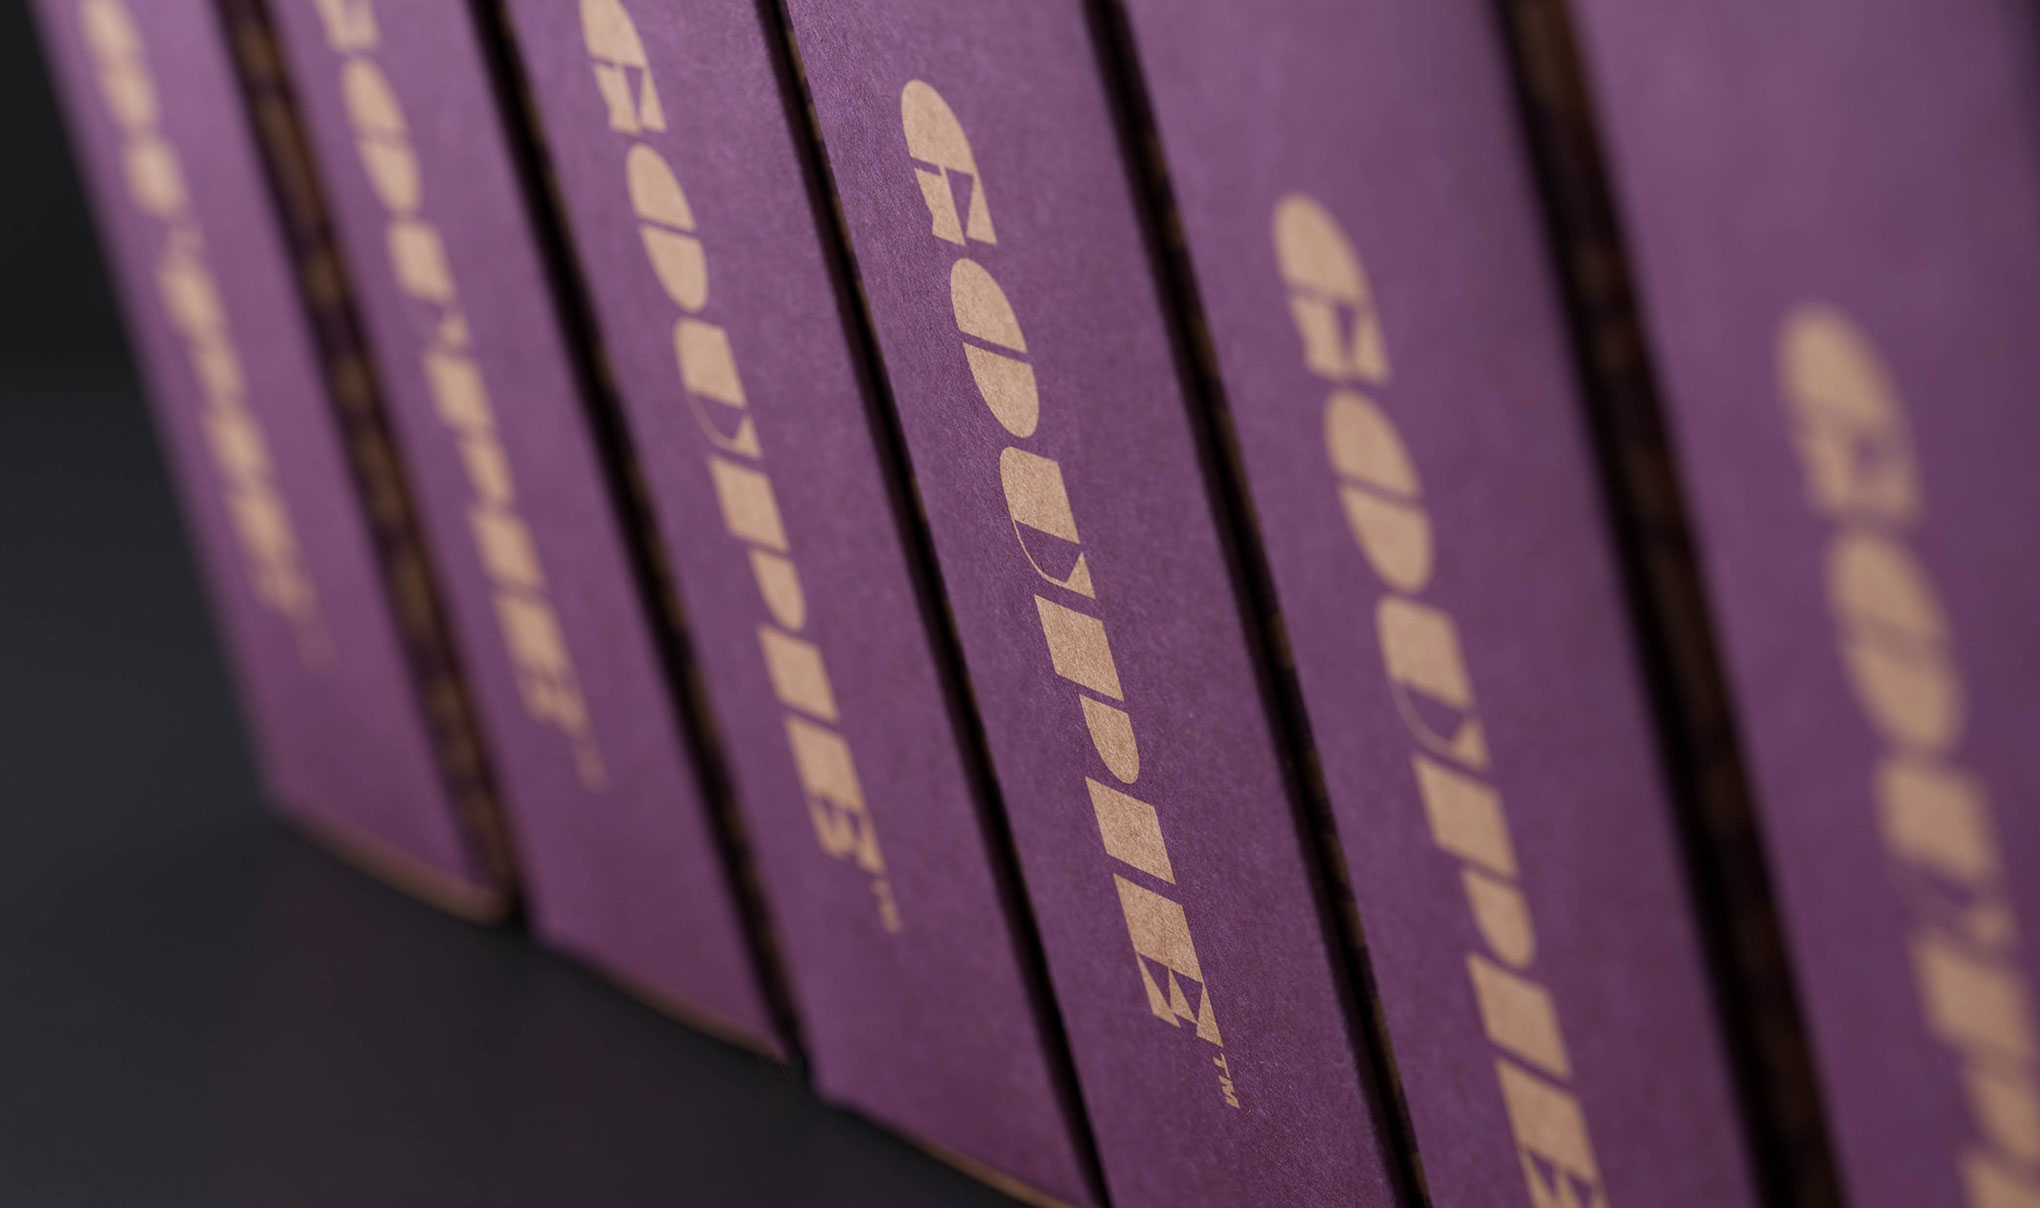 Chocolate packaging design. Image shot of the sides of the trapezoid cartons lined up. Shallow depth of field with the focus on the brand name. Designed by packaging design agency - Flipflop Design Ltd.